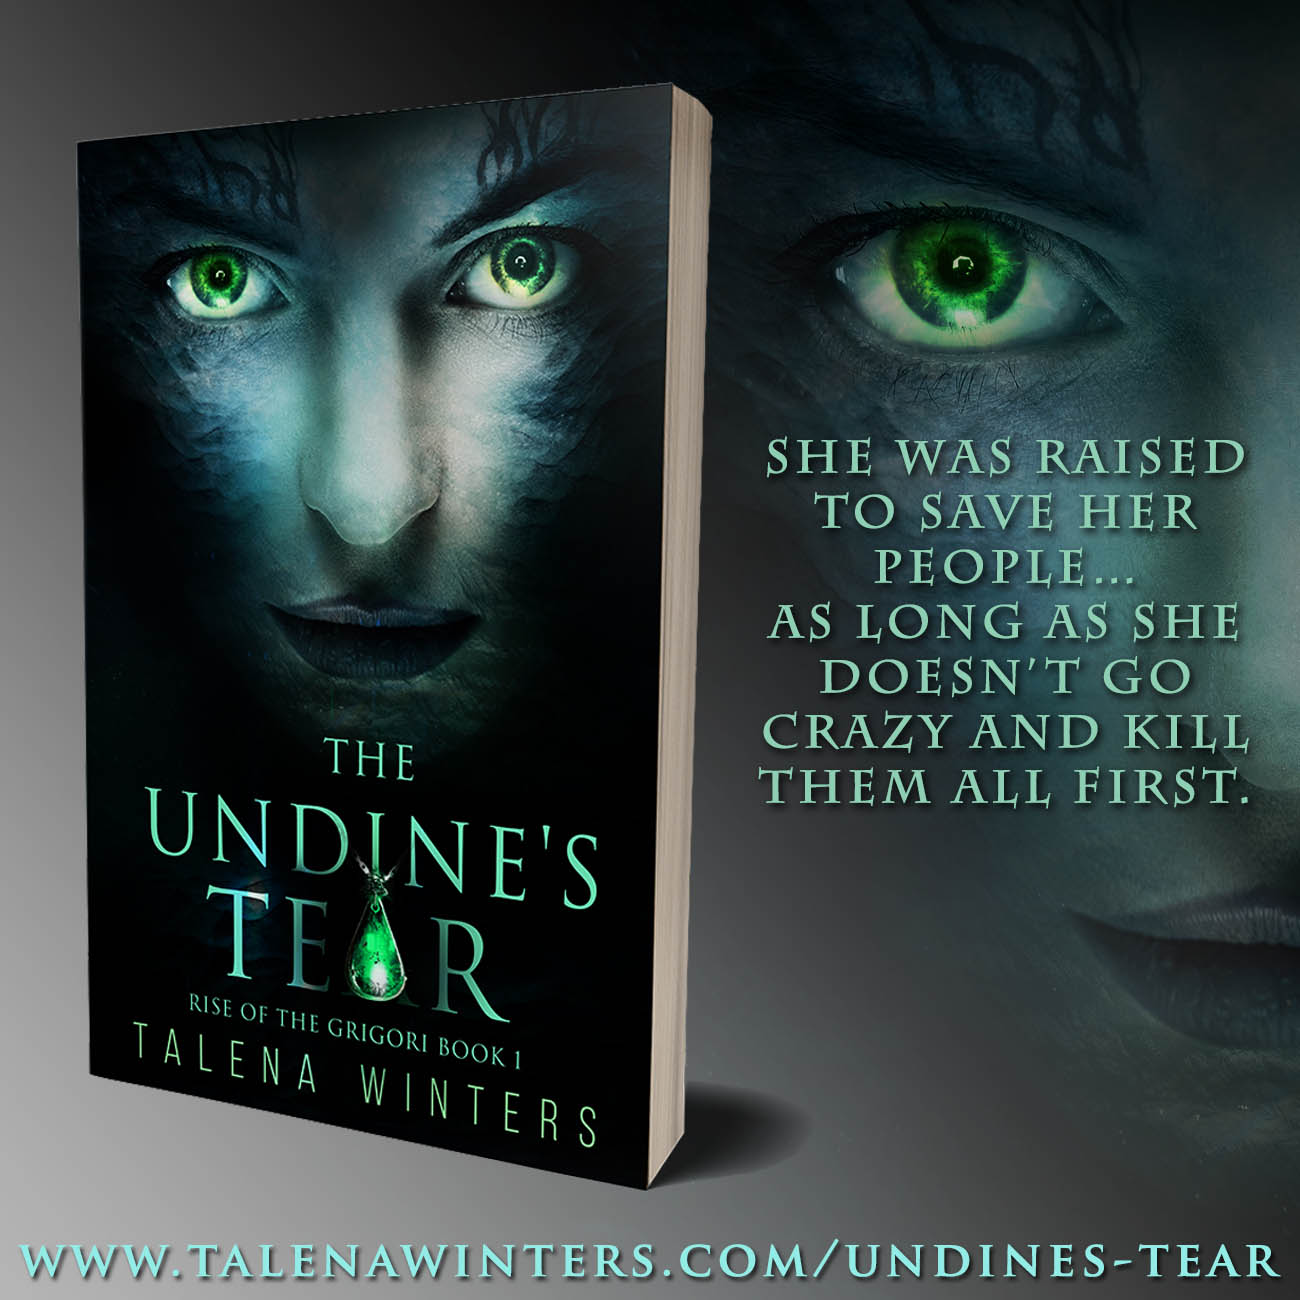 She was raised to save her people—as long as she doesn't go crazy and kill them all first.  The Undine's Tear  by Talena Winters. Young adult science fantasy.